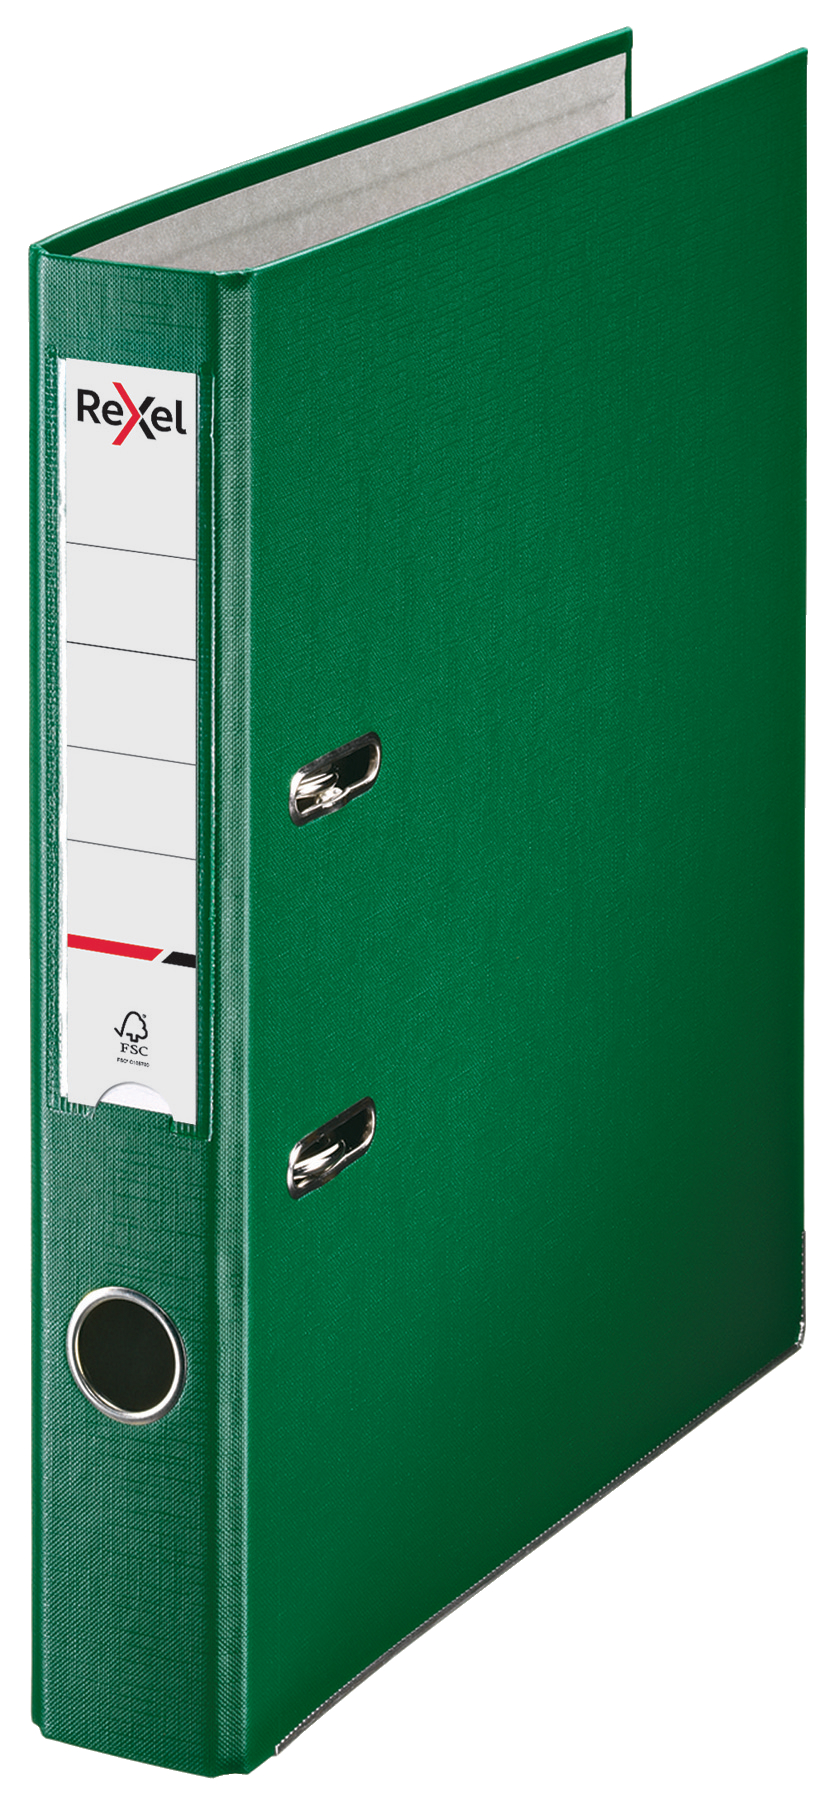 Lever Arch Files Rexel Lever Arch File ECO Polypropylene A4 50mm Spine Width Green (Pack 25)